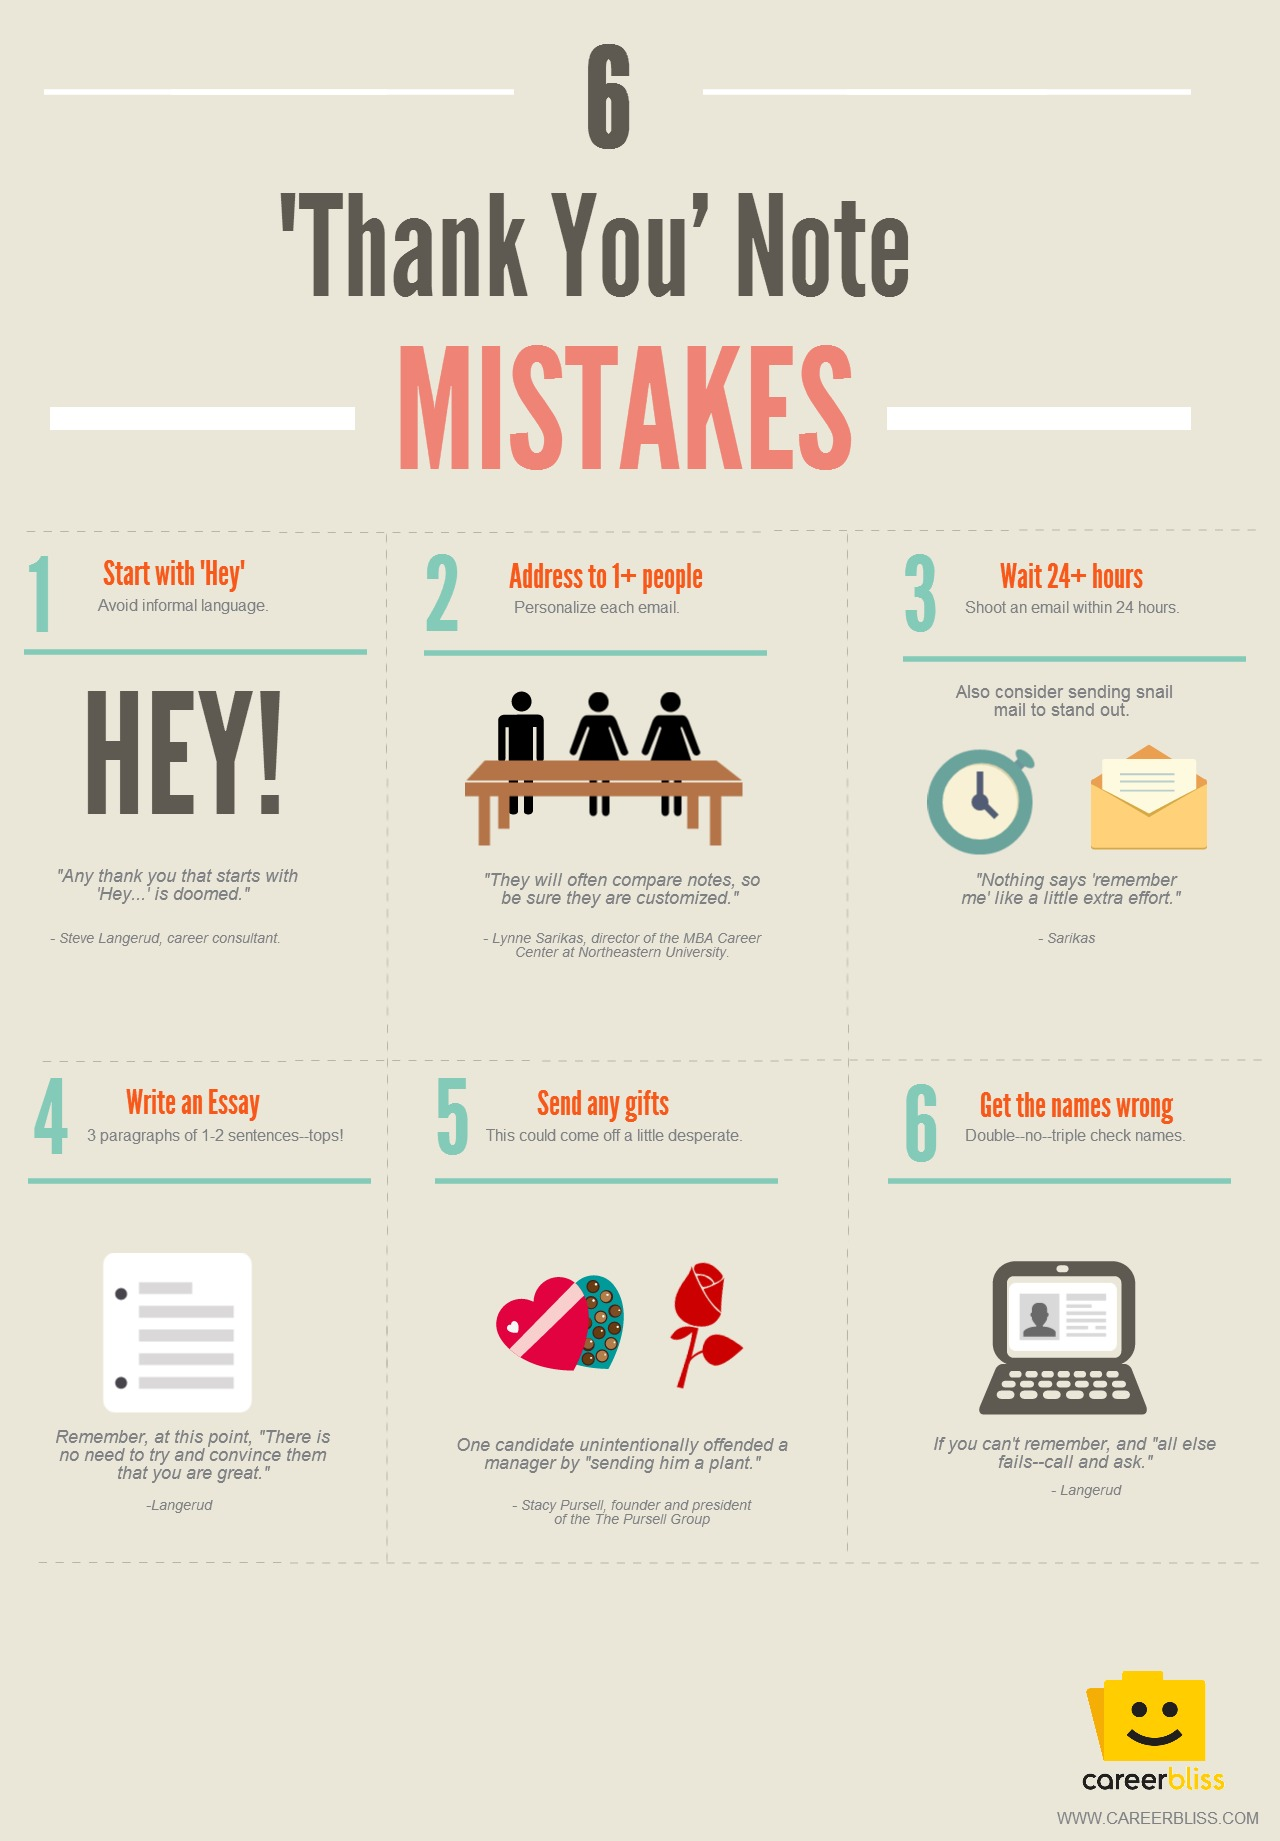 Thank You Note Mistakes Infographic  Careerbliss